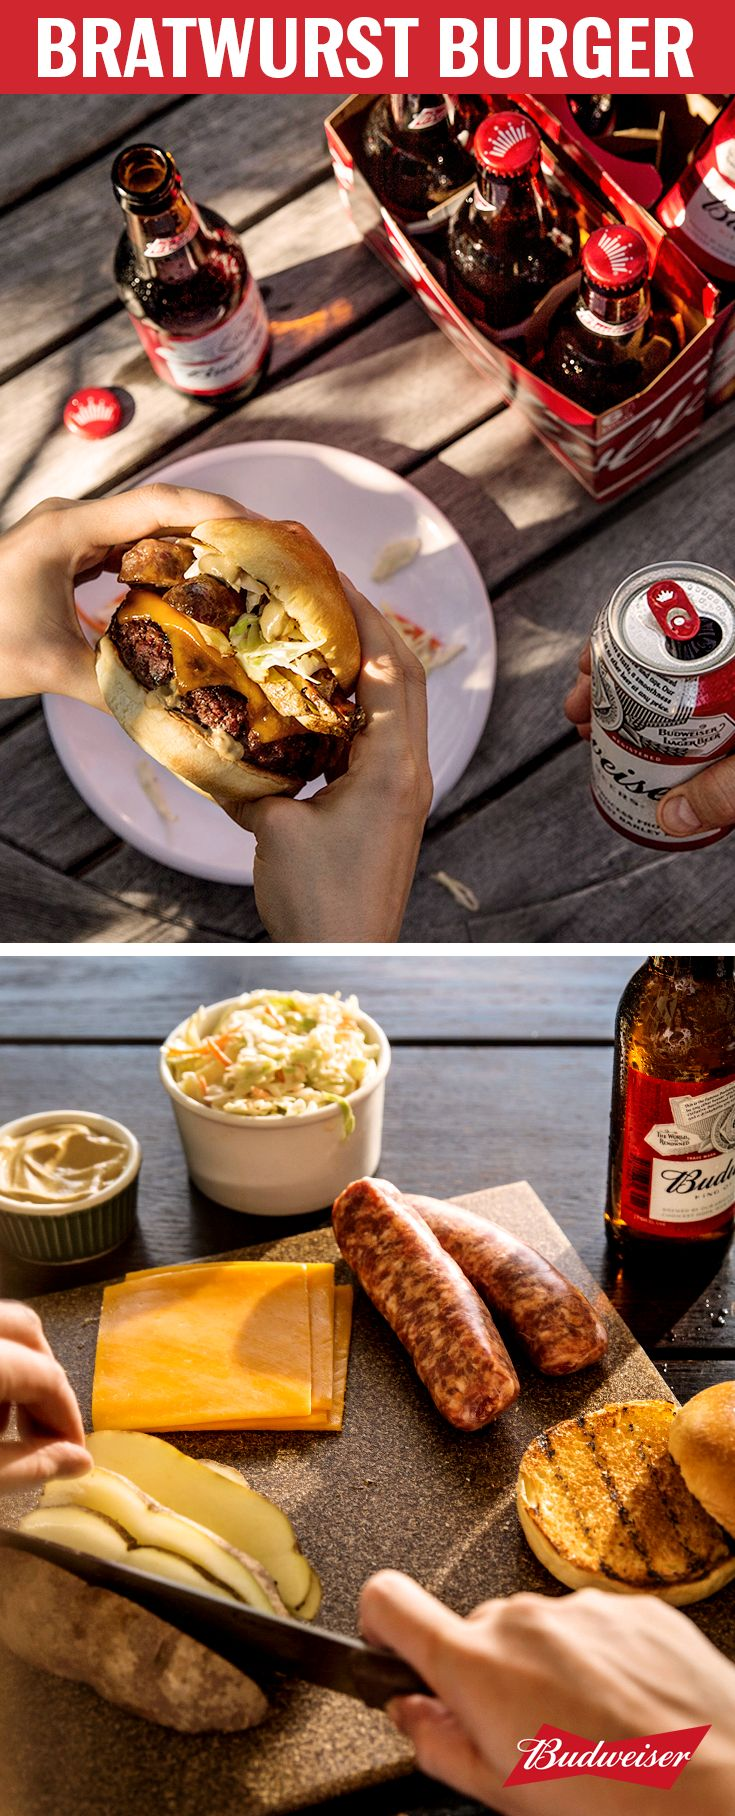 The Bratwurst Burger is an epic combination of two cookout favorites. Coleslaw, sausage, and potatoes come together with a cheddar burger on a brioche bun. Proof that unexpected toppings can seriously up your grilling game. Pairs perfectly with Budweiser's crisp finish for the ultimate backyard meal.